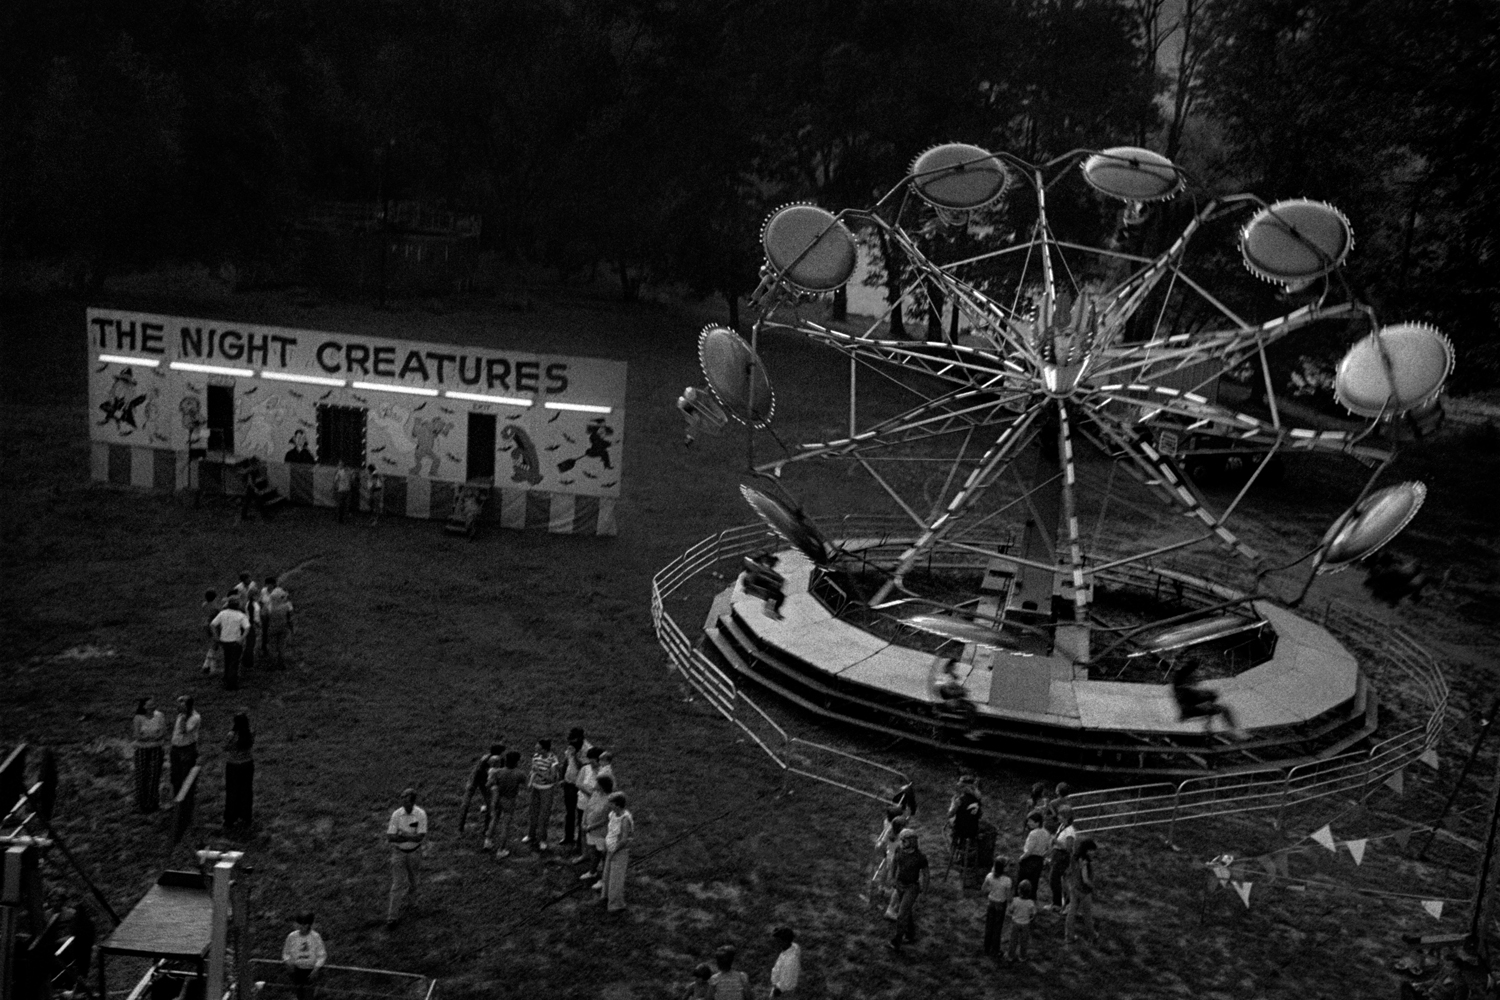 Carnival on the Island, Marshall, Madison County, NC 1983